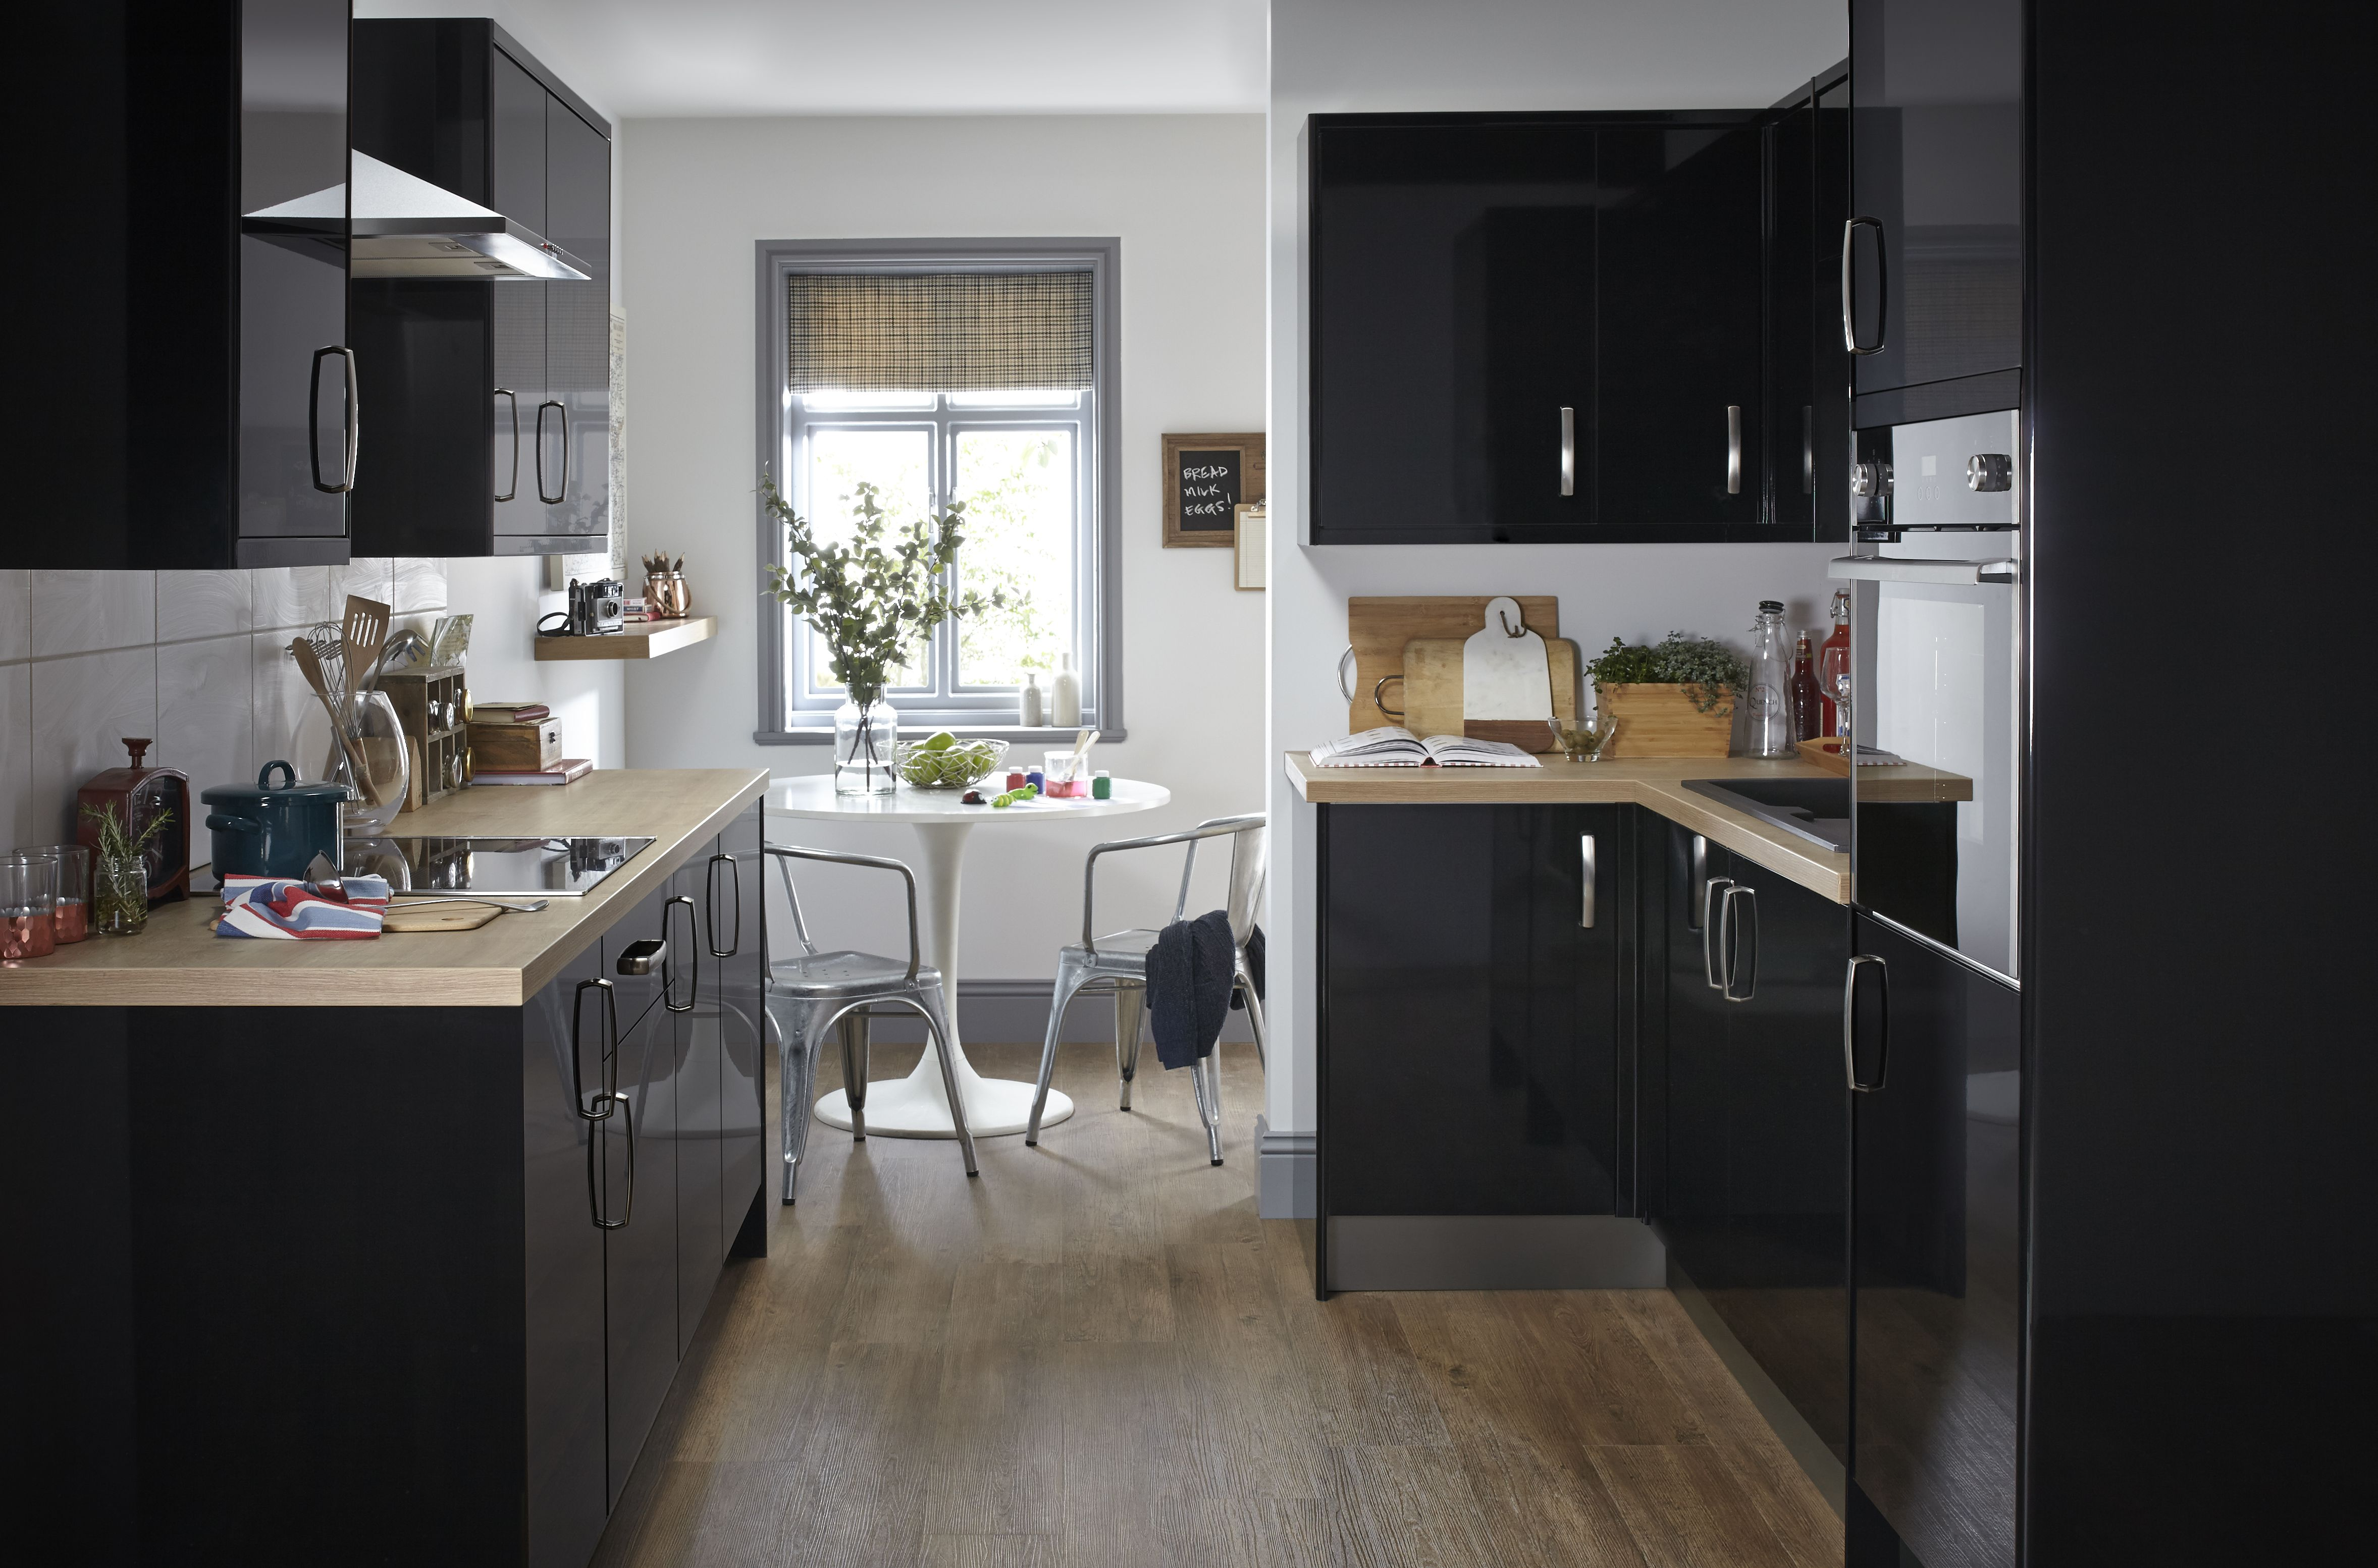 Replacement Acrylic High Gloss Kitchen Doors Drawers: HIGH GLOSS BLACK REPLACEMENT KITCHEN DOORS AND DRAWERS